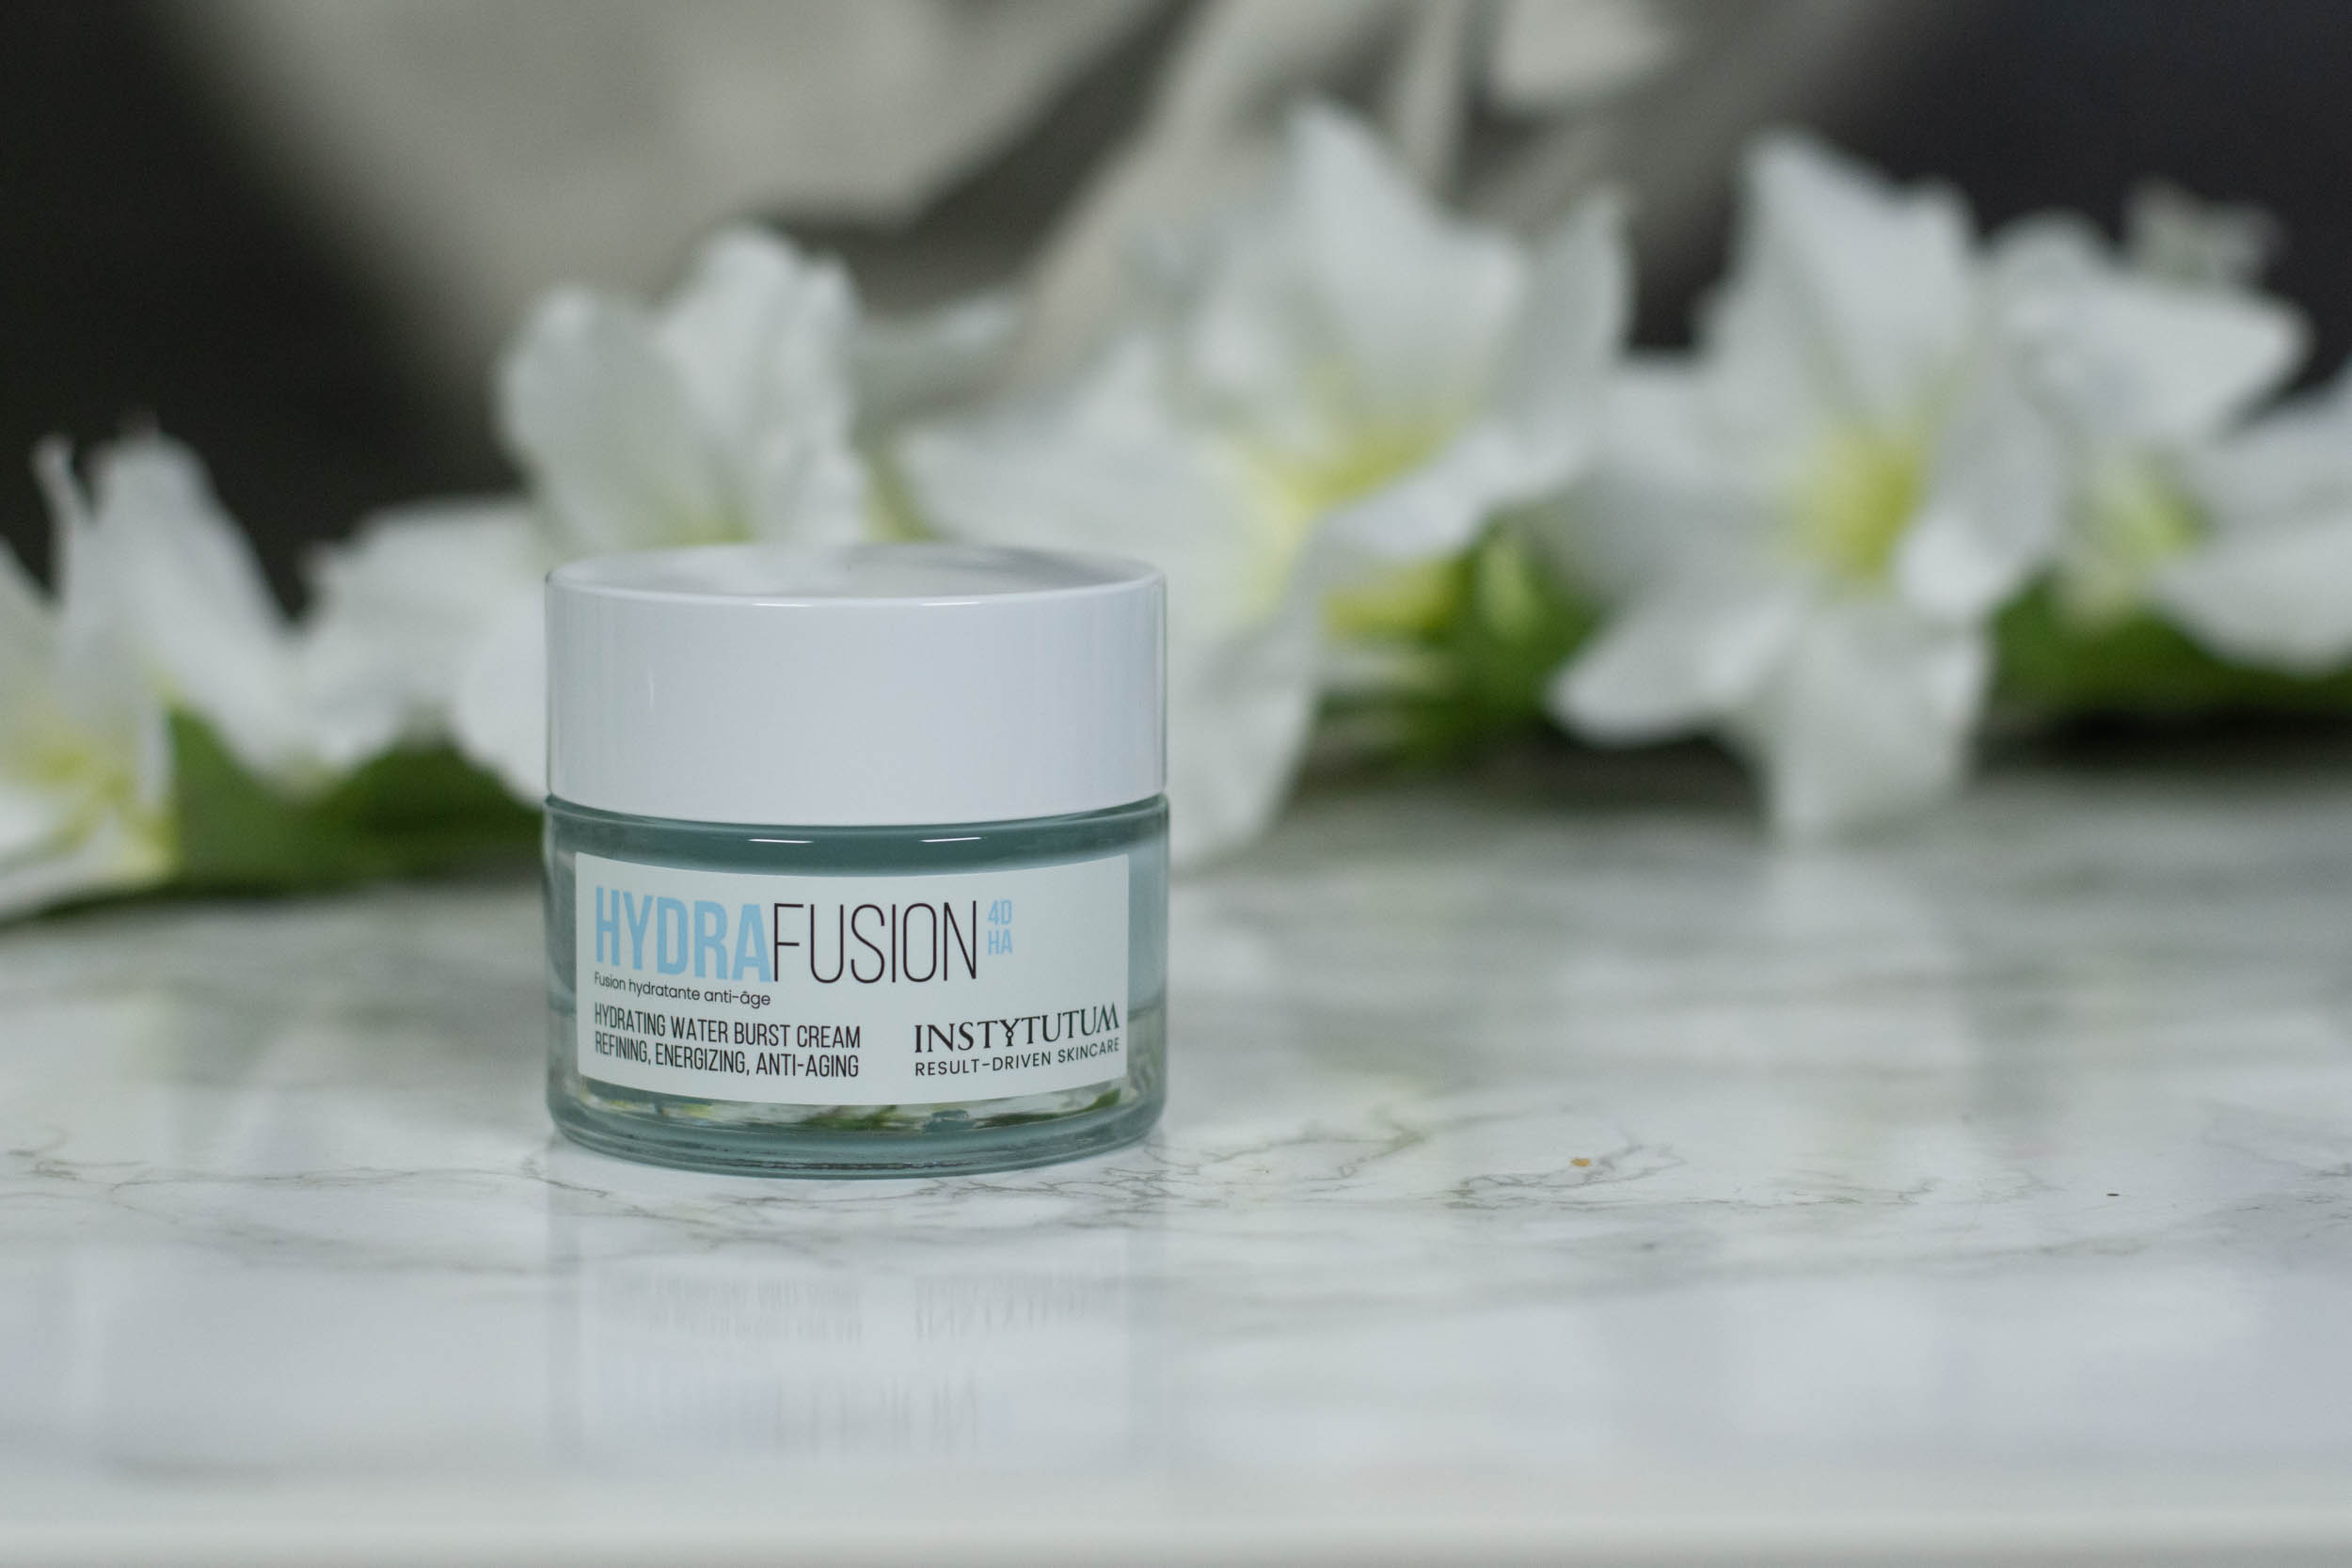 Instytutum Hydrafusion Water Burst Cream Review